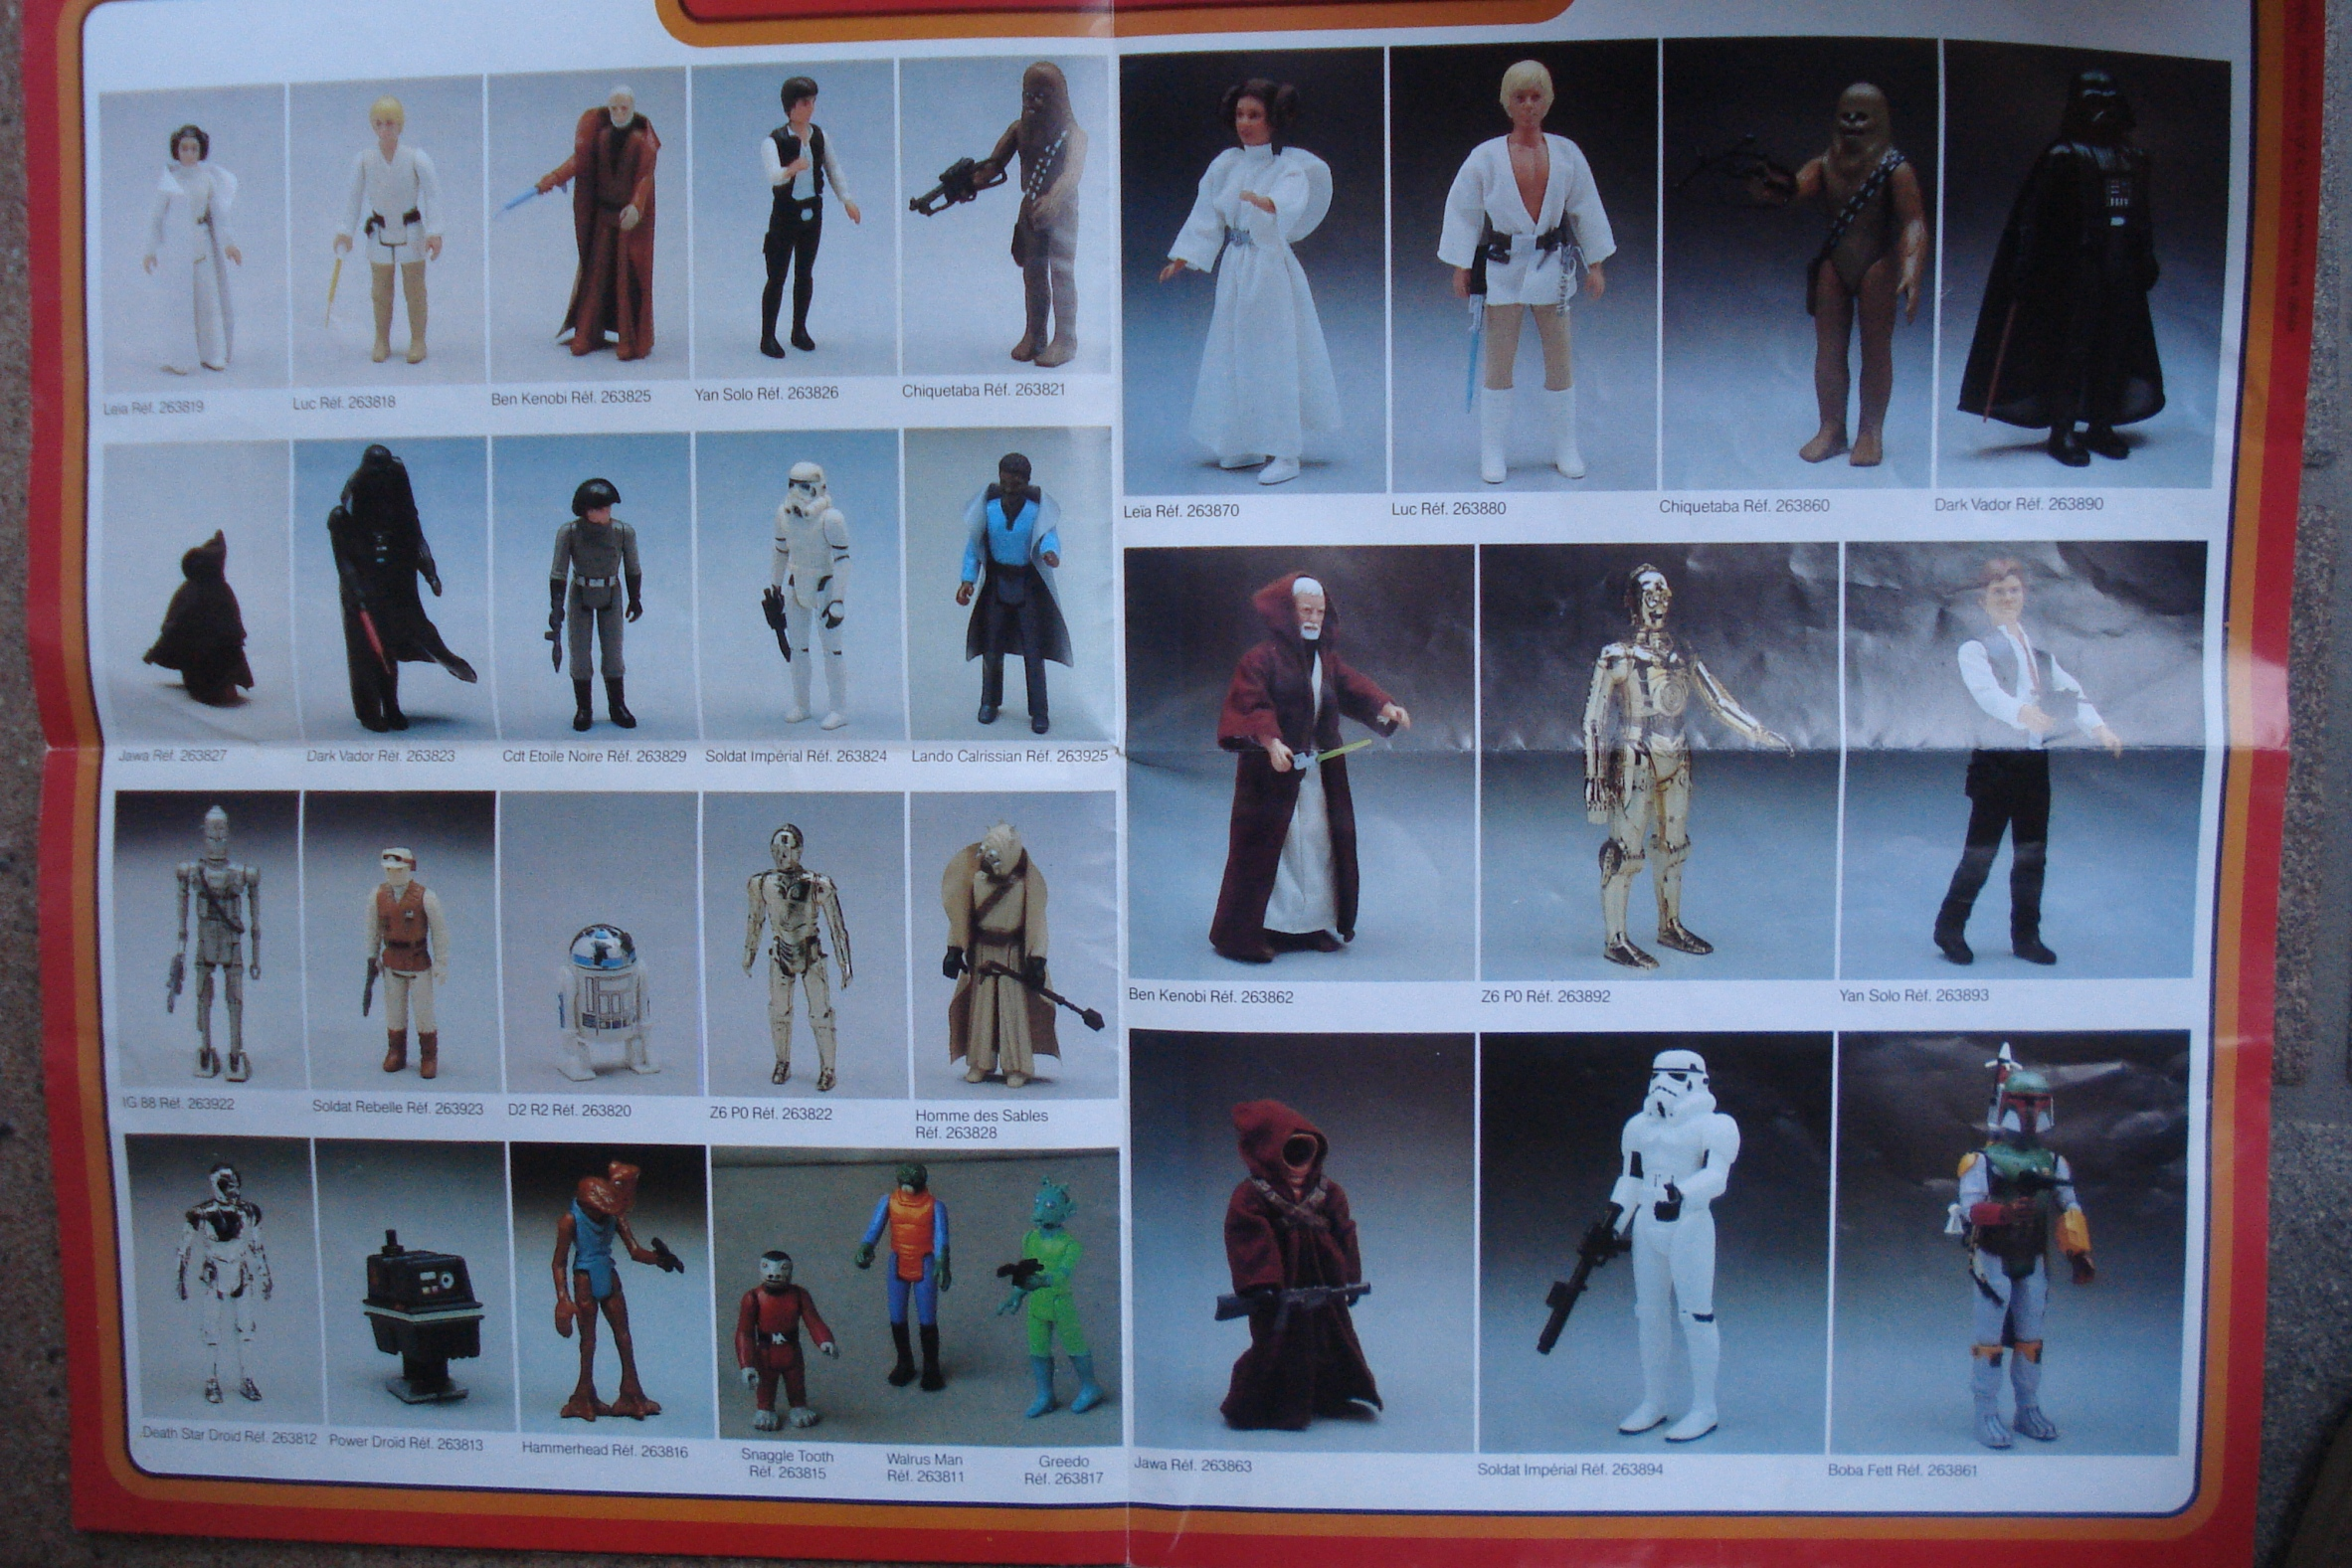 Collecting Vintage Paper Work that show Vintage Star Wars Toys! - Page 8 Www.tvn.hu_2ee6550d0def0ad397d0c6c00f8049b6